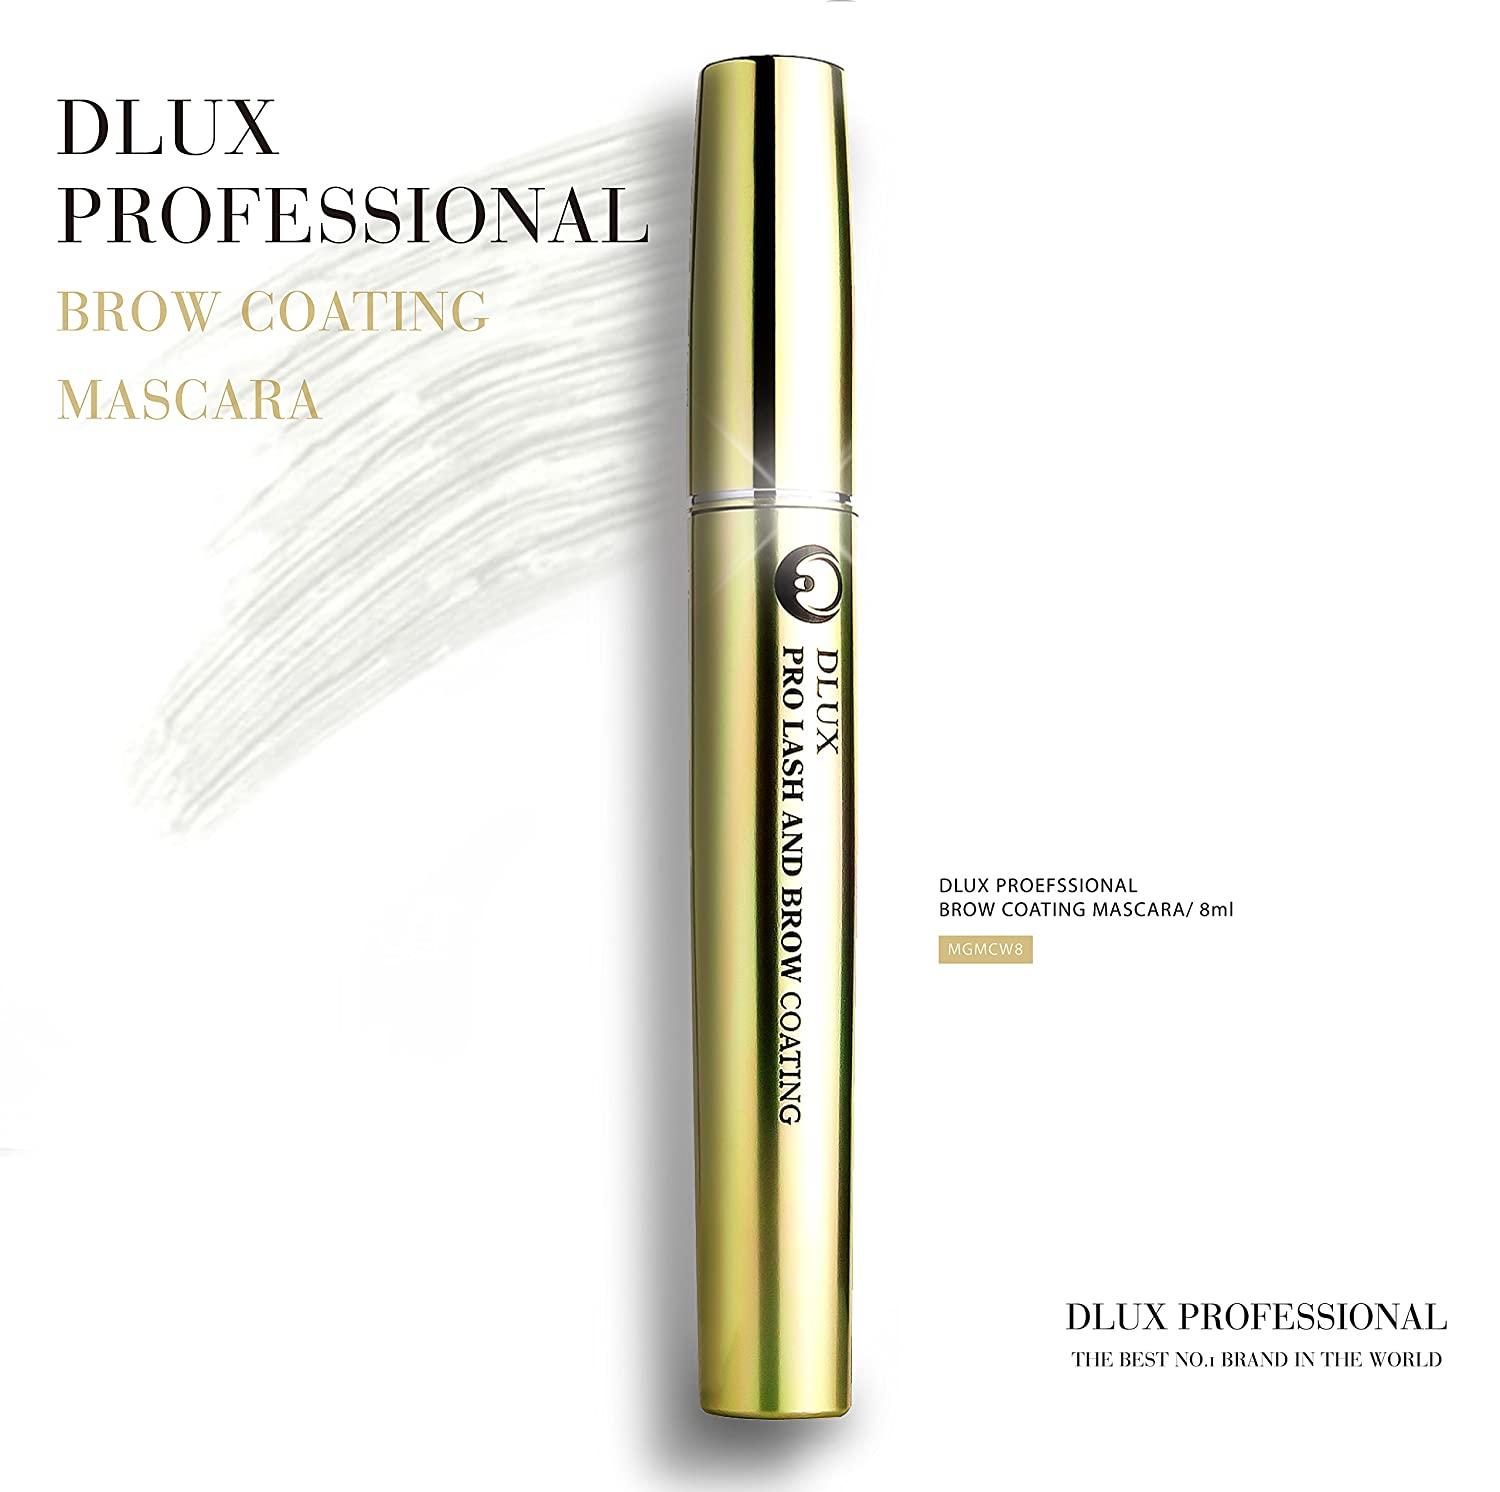 Amazon.com : DLUX PROFESSIONAL LASH & BROW COATING MASCARA(8ml) White/Eyelash Mascara/Latex Free/Eyelash coating/PROVIDES STRONGER/NATURALLY LONGER/Roots ...